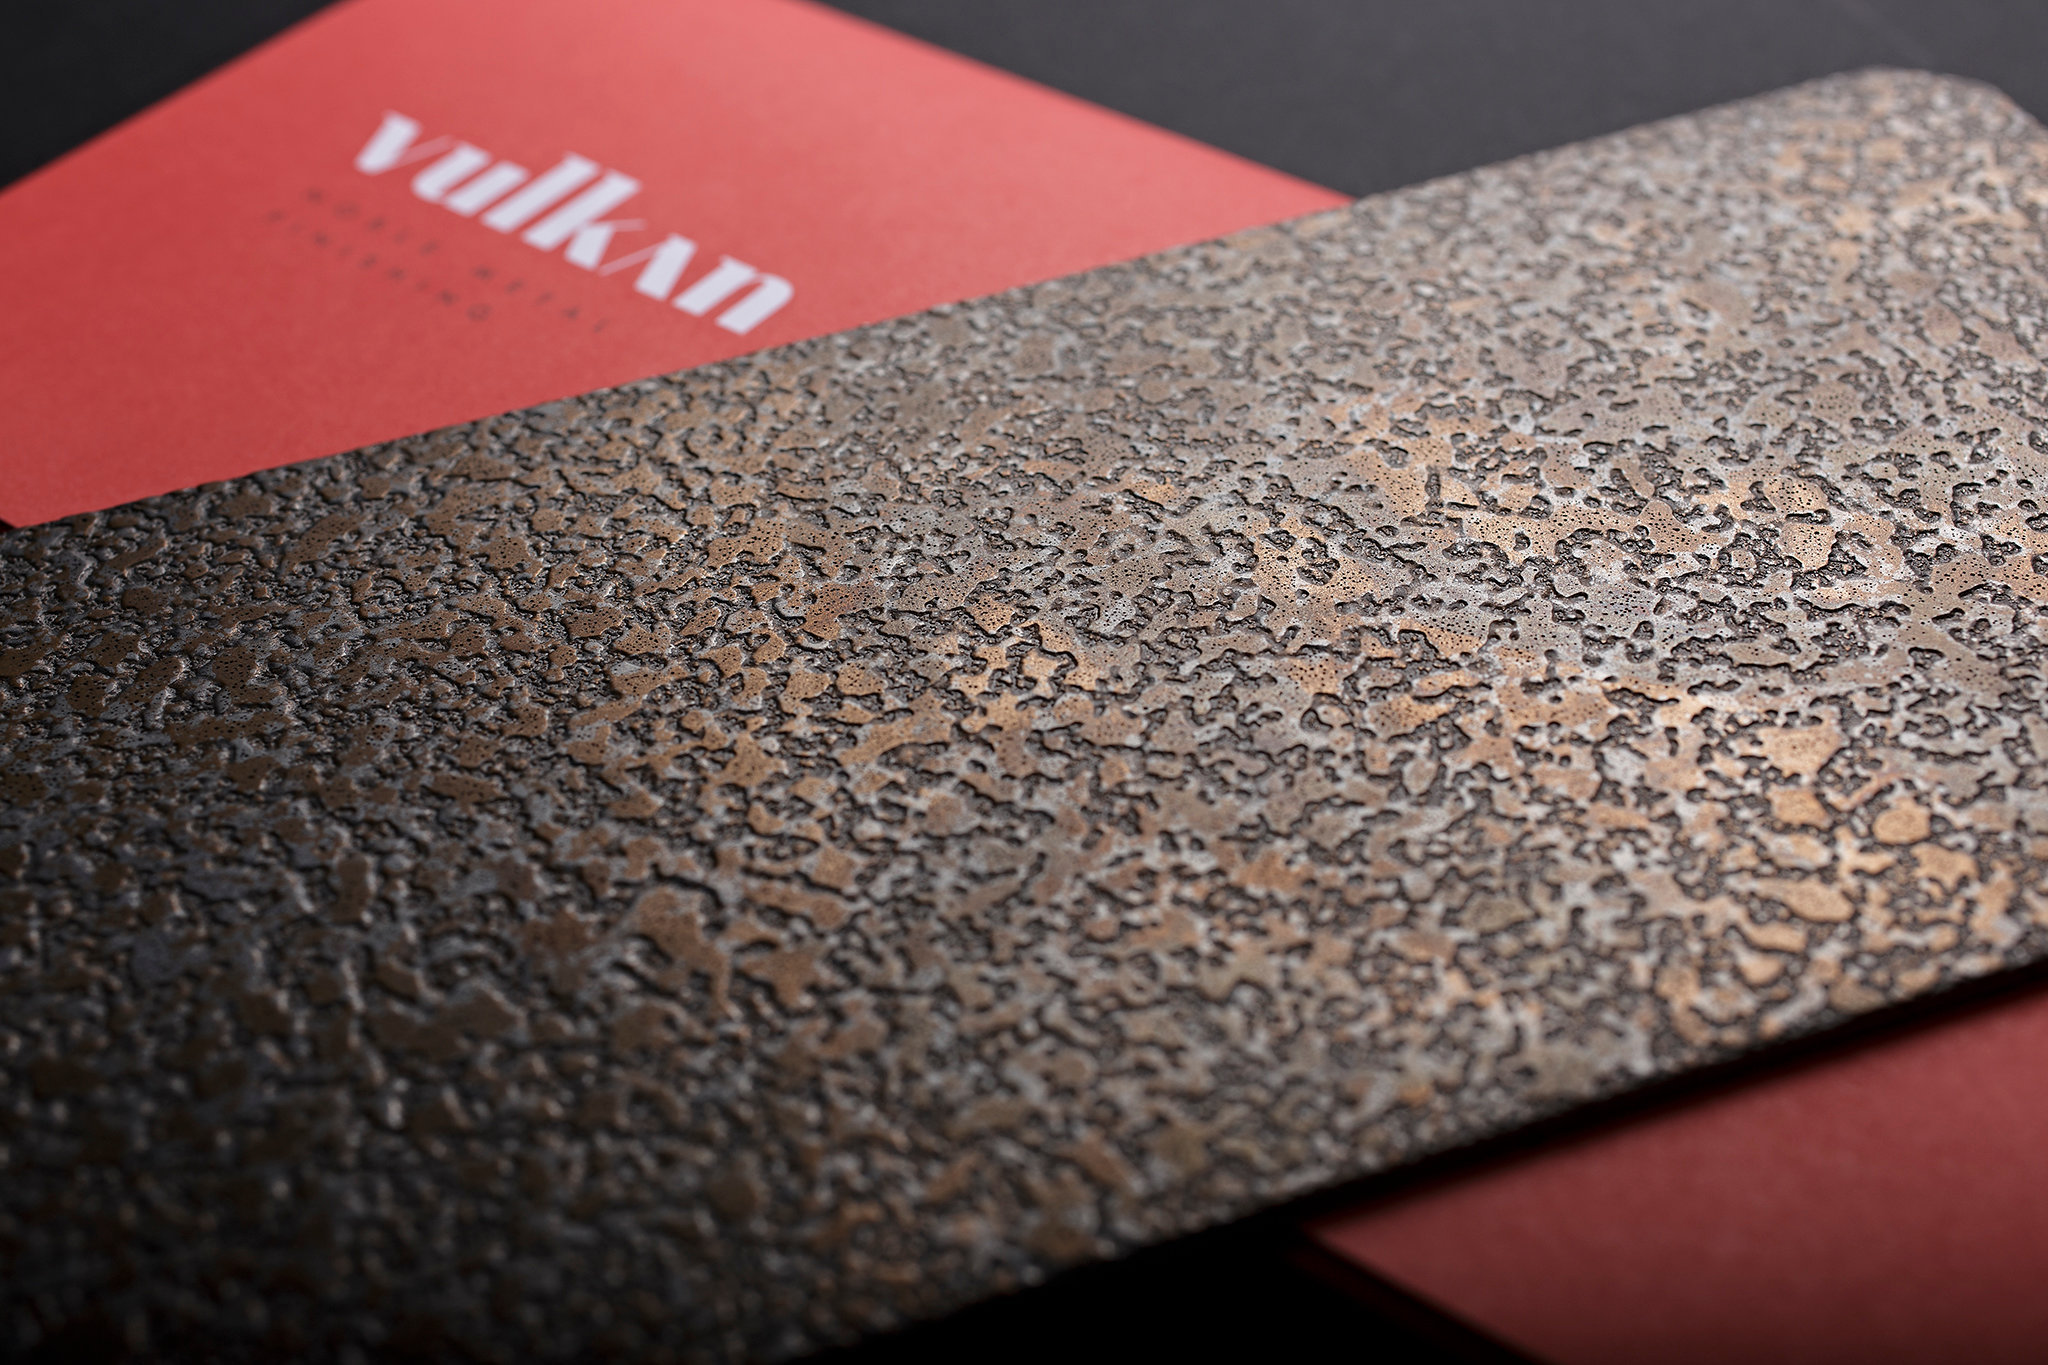 Vulkan Noble Metal Finishing